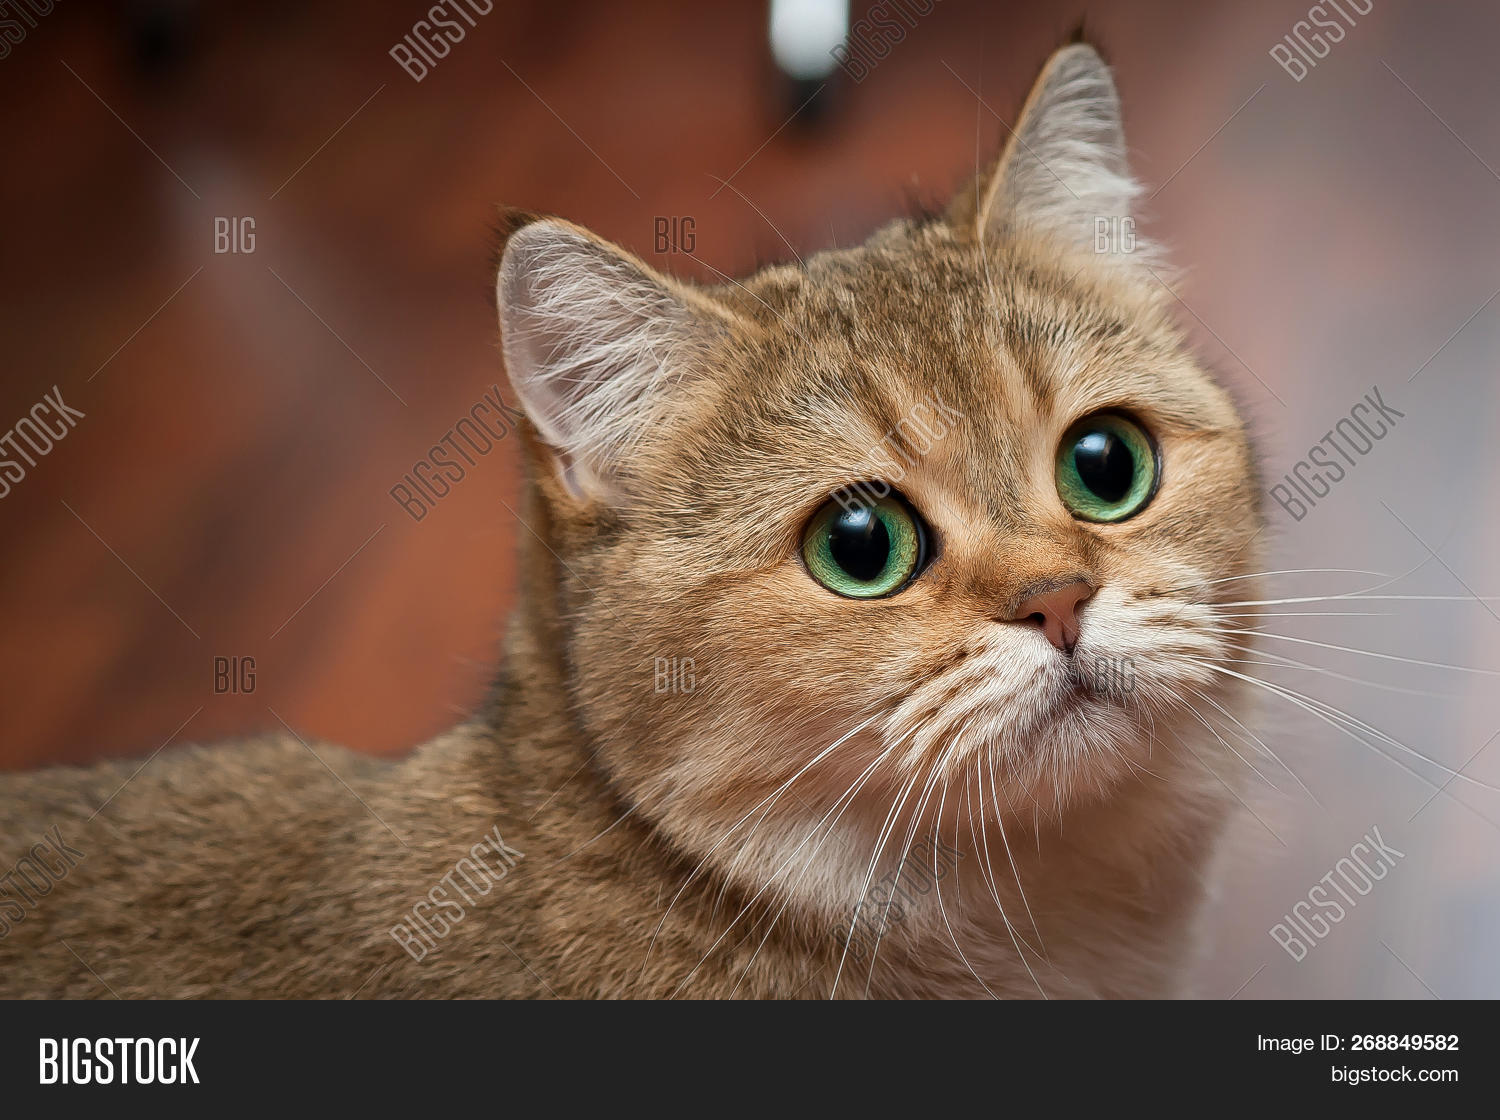 Golden British Cat Image & Photo (Free Trial) | Bigstock